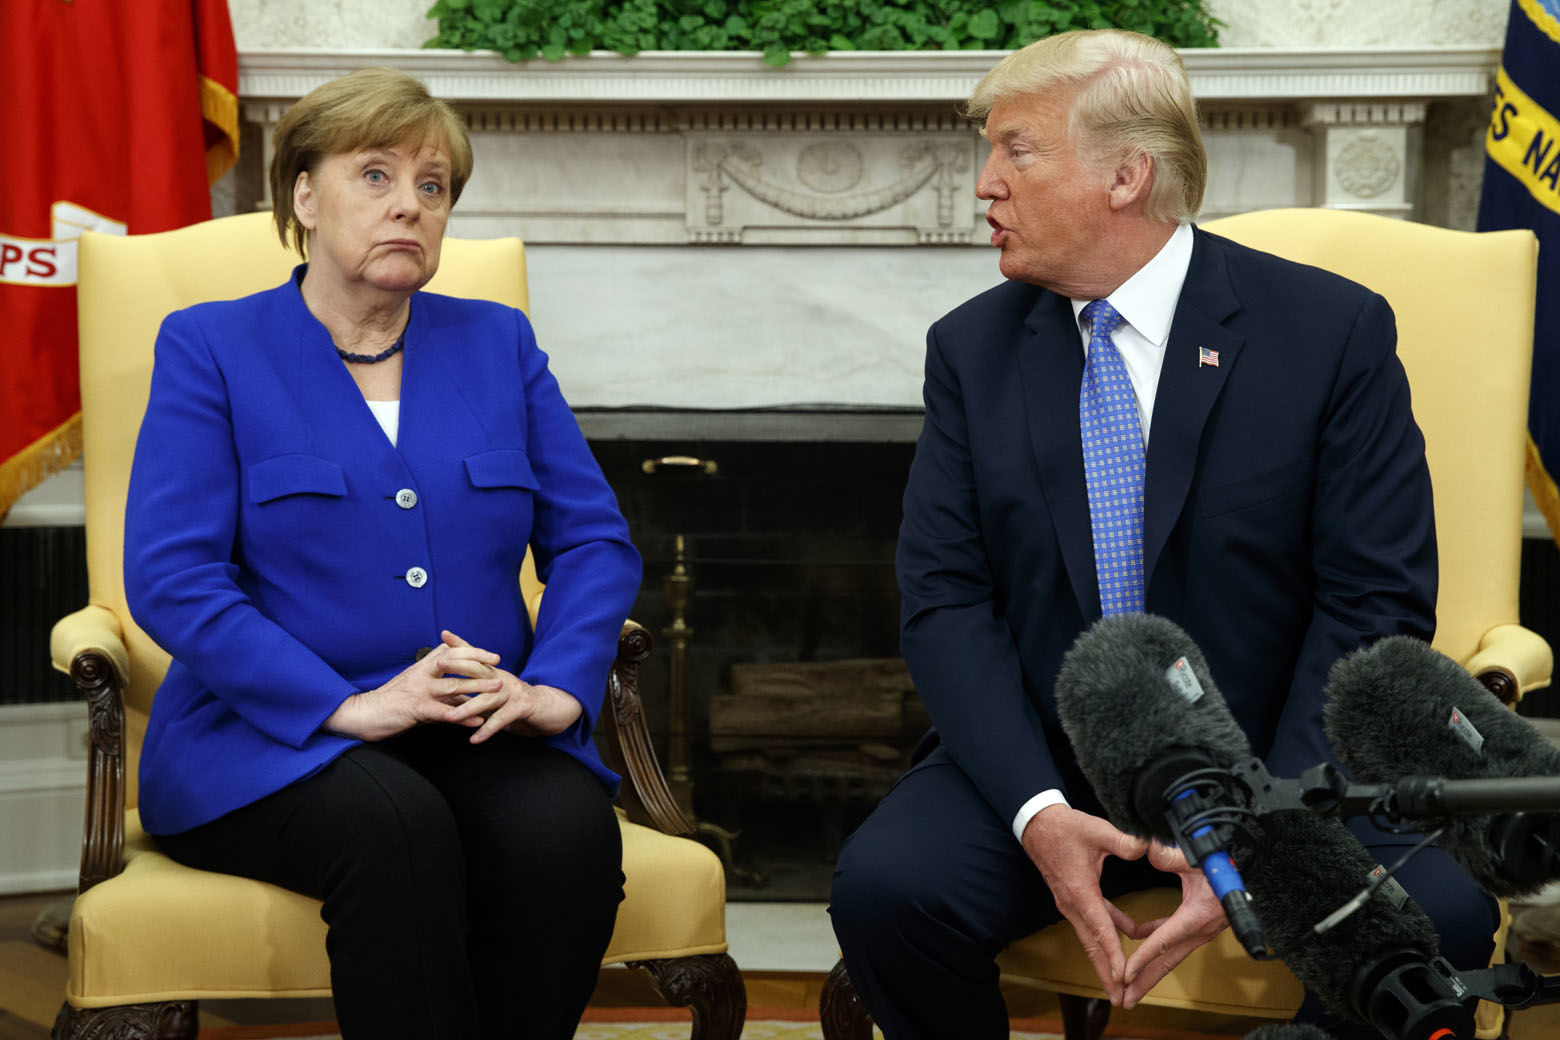 President Donald Trump meets with German Chancellor Angela Merkel in the Oval Office of the White House, Friday, April 27, 2018, in Washington. (AP Photo/Evan Vucci)